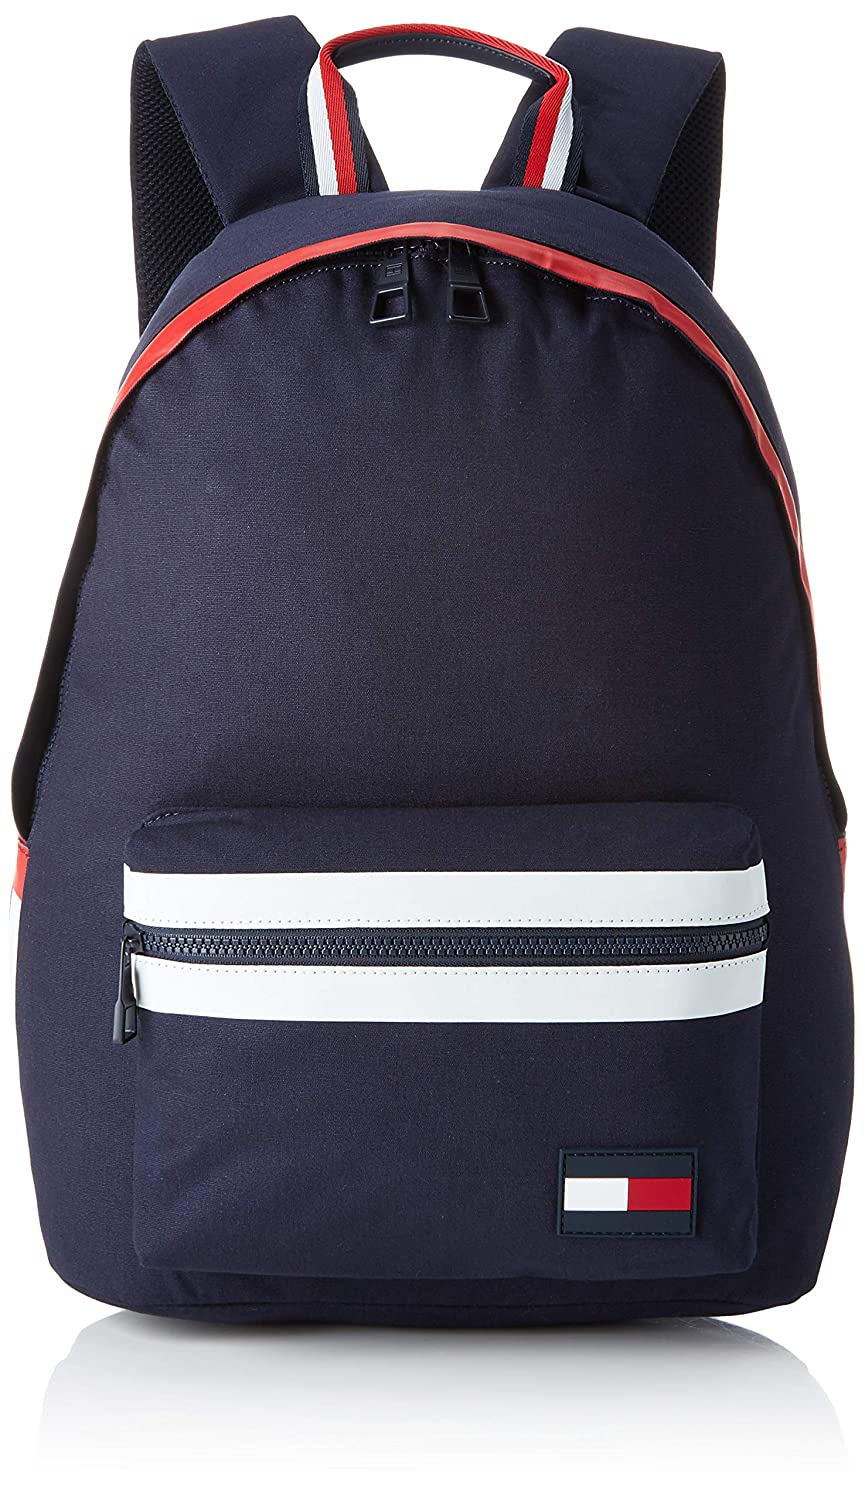 Tommy Hilfiger - Backpack Pop, Mochilas Hombre, Azul (Corporate), 15x43x30 cm (B x H T): Amazon.es: Zapatos y complementos